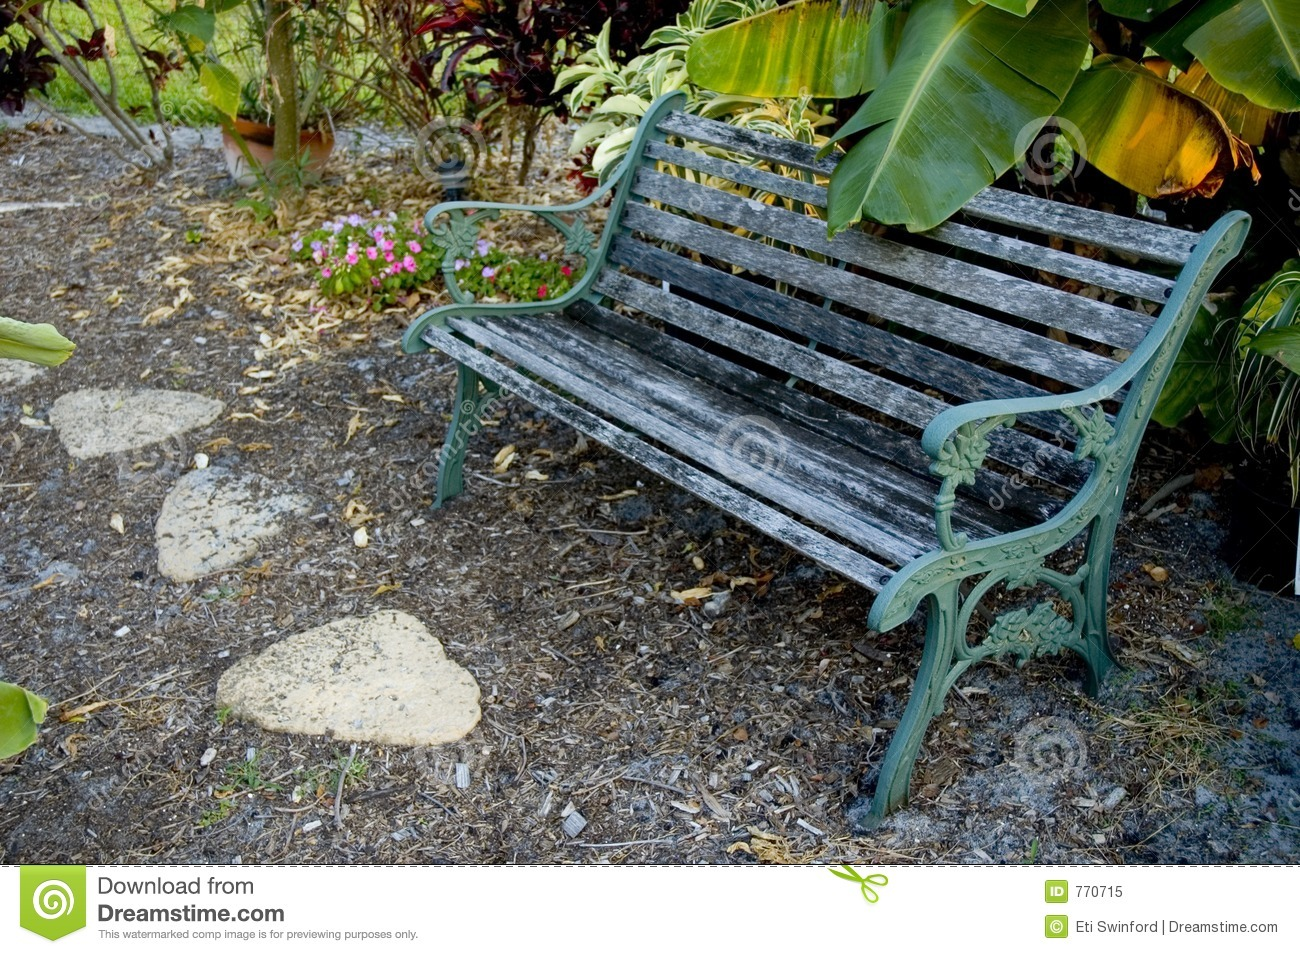 Banc de jardin photo libre de droits image 770715 for Banc de jardin original